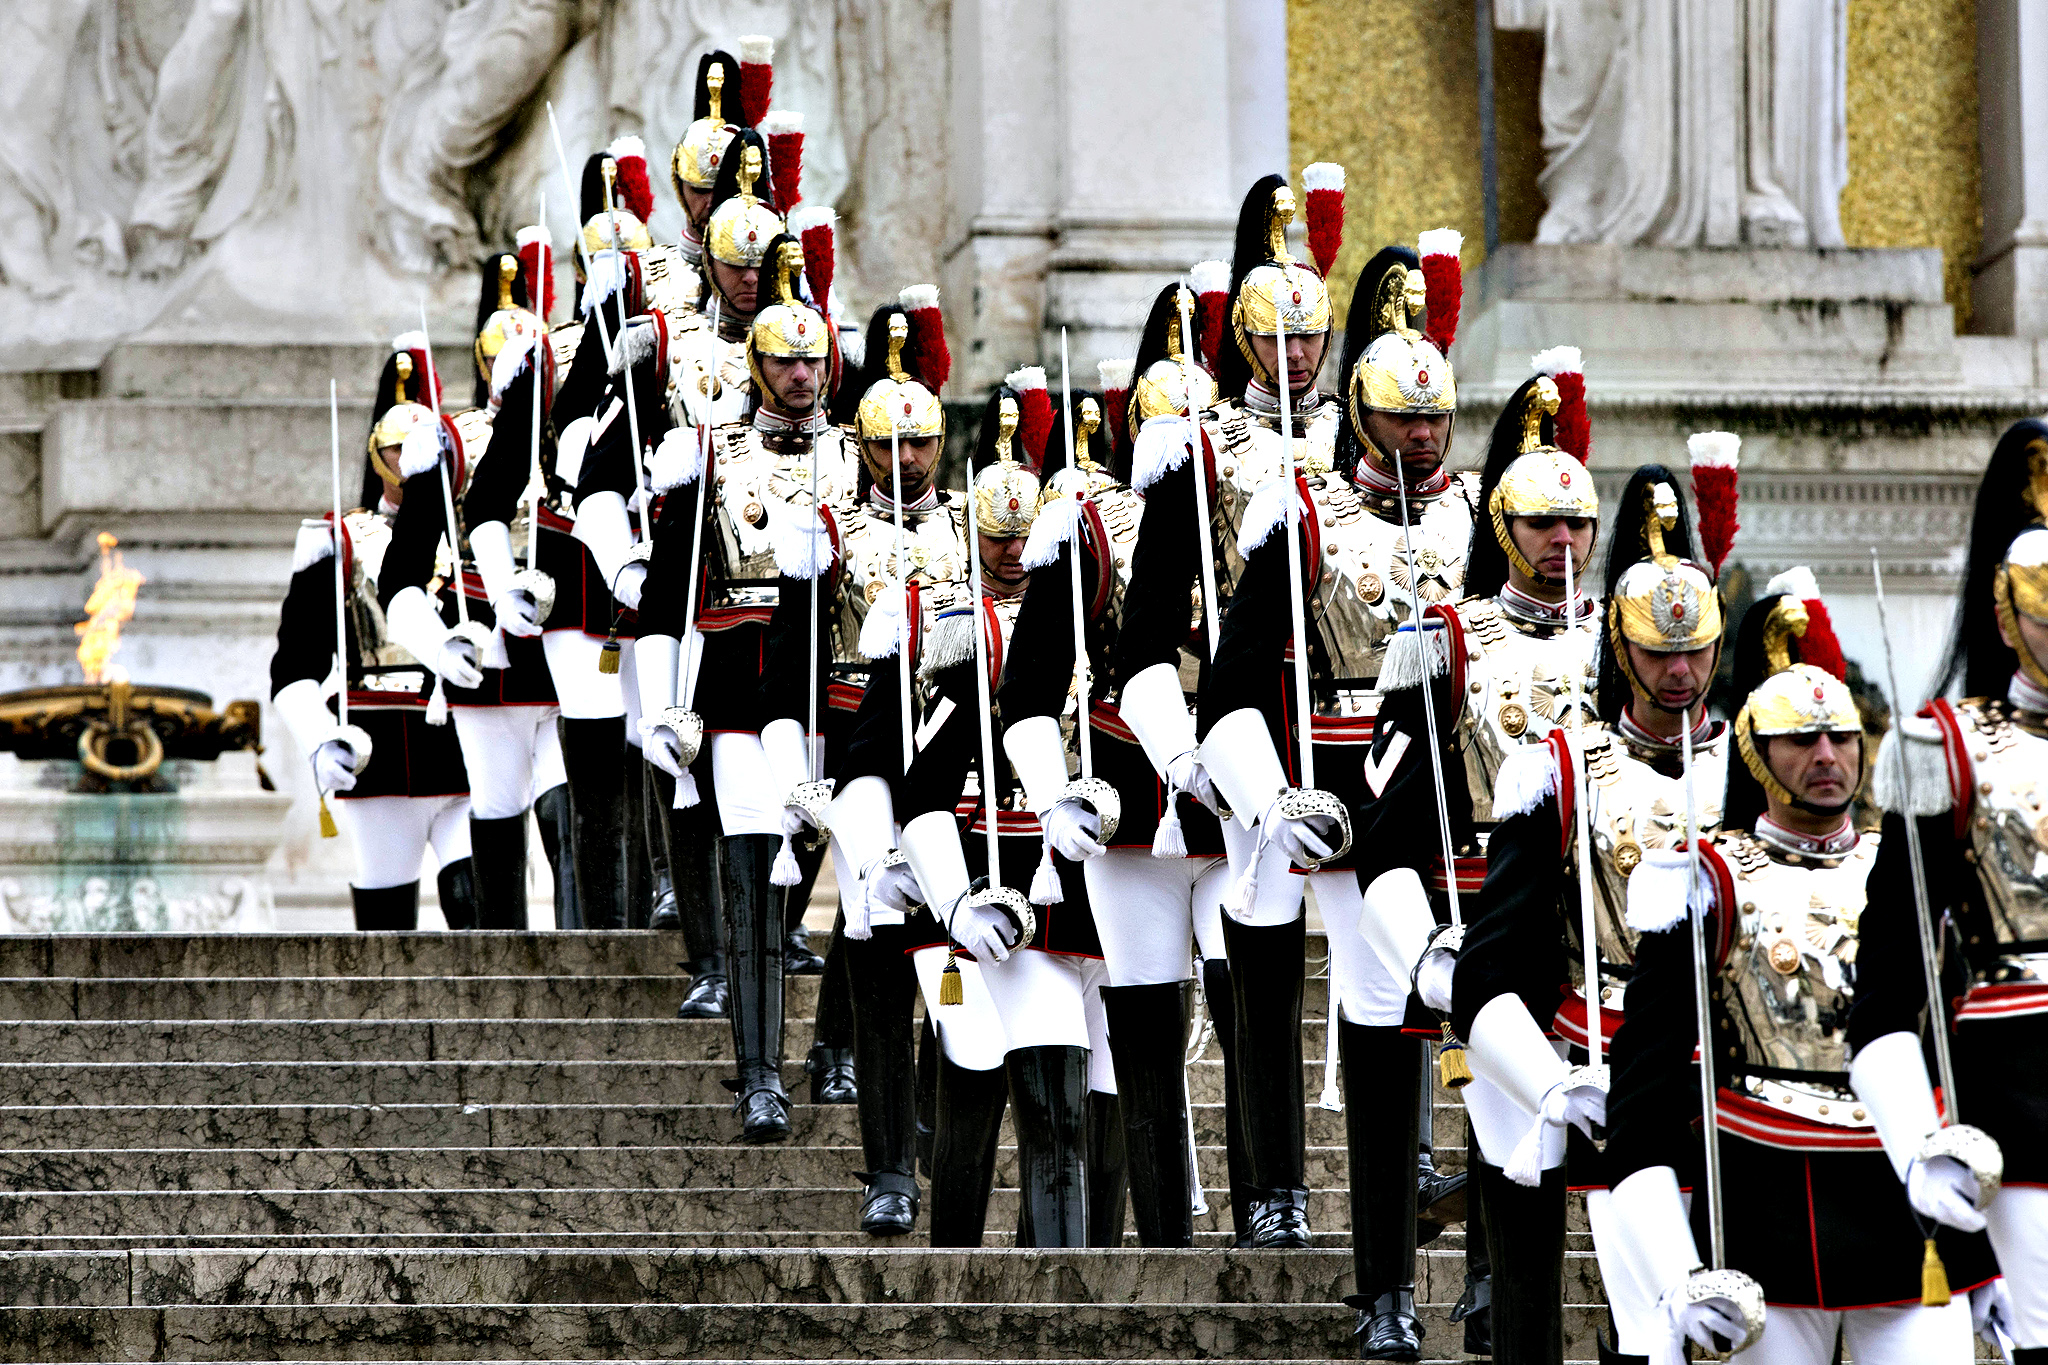 "Cuirassier presidential guards line up at the Vittoriano Unknown Soldier monument prior to the arrival of newly elected Italian President Sergio Mattarella in Rome, Tuesday, Feb. 3, 2015. Italy's new president, Sergio Mattarella, has taken the oath of office with a vow to fight corruption and organized crime and encourage the nation to embrace economic and electoral reform. The new head of state, whose brother, Piersanti Mattarella, was slain while governor of Sicily by the Mafia in 1980, denounced as ""alarming"" the spread of the Mafia from its traditional base in the south to northern cities. Mattarella, in his speech to Parliament Tuesday, also decried pervasive corruption, which he said robs citizens of resources meant for them and upsets market rules, ""penalizing the honest and the capable."""